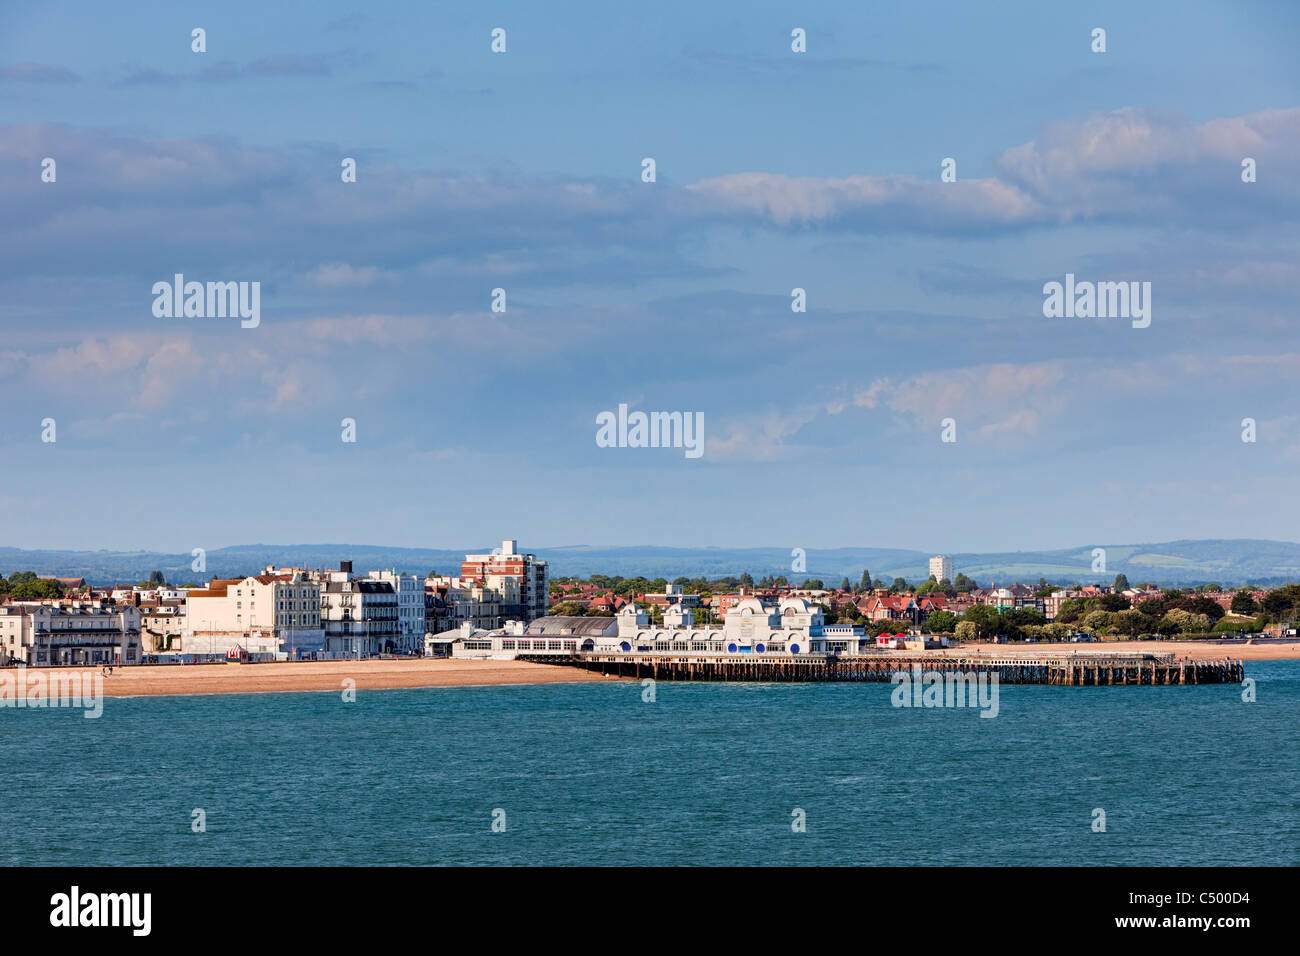 Southsea Pier and Beach, Portsmouth, England UK - Stock Image